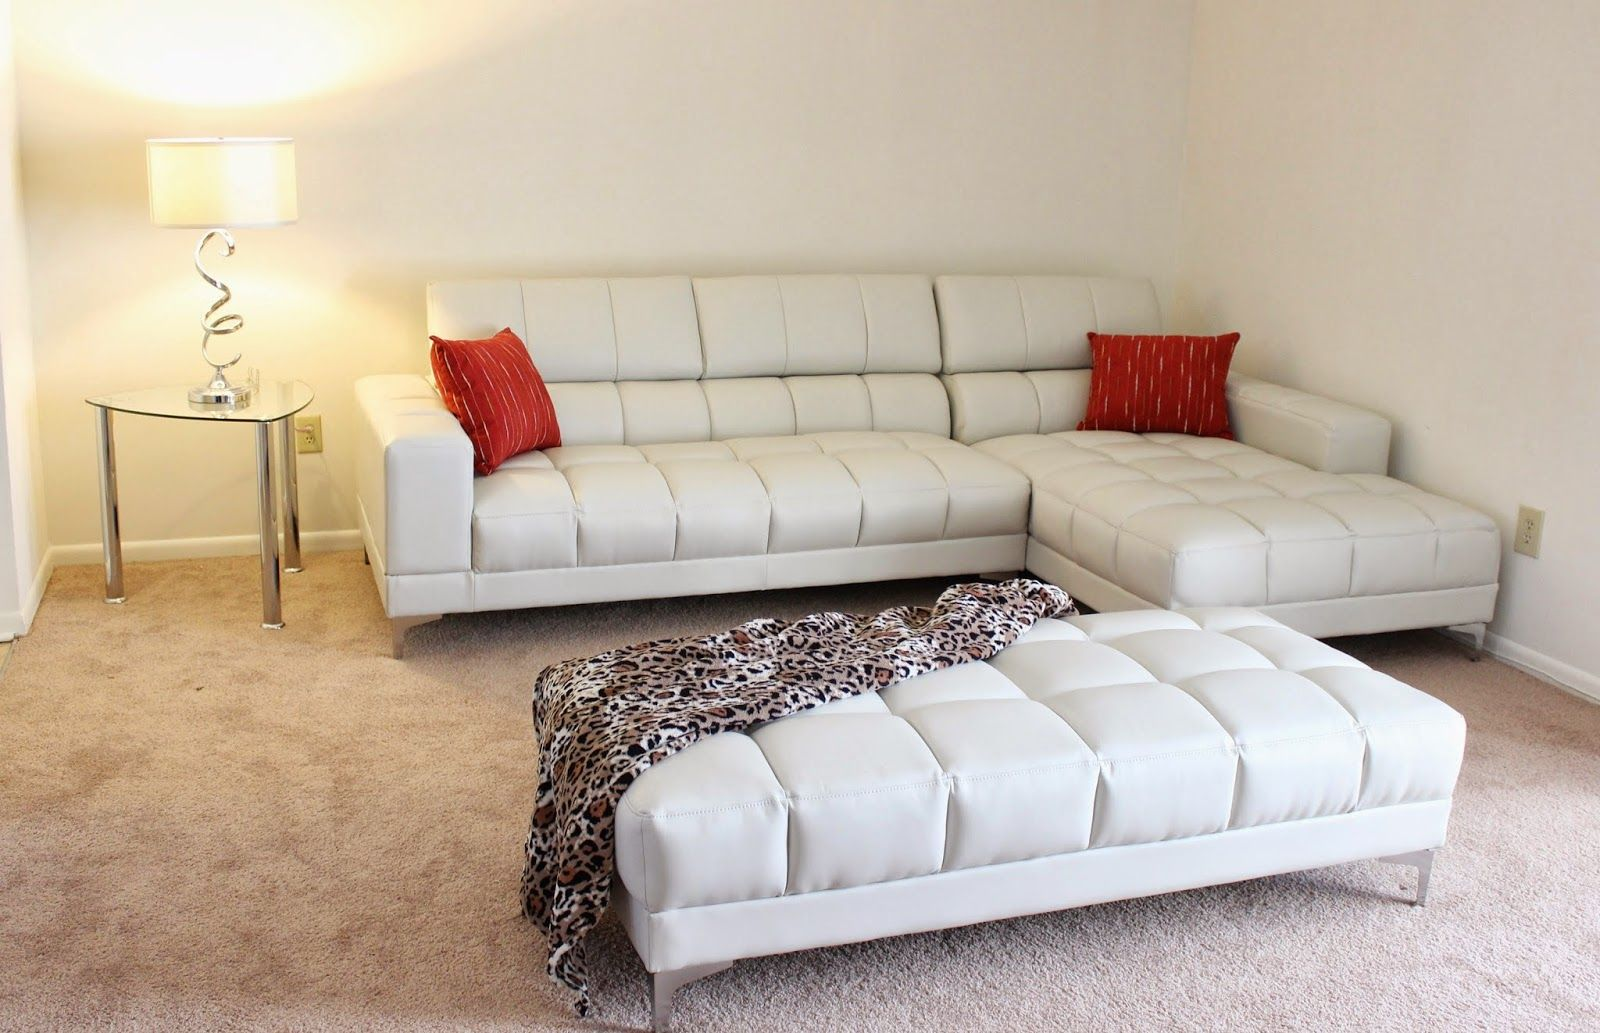 Sofia Vergara Sofa Collection Best Collections Of Sofas And